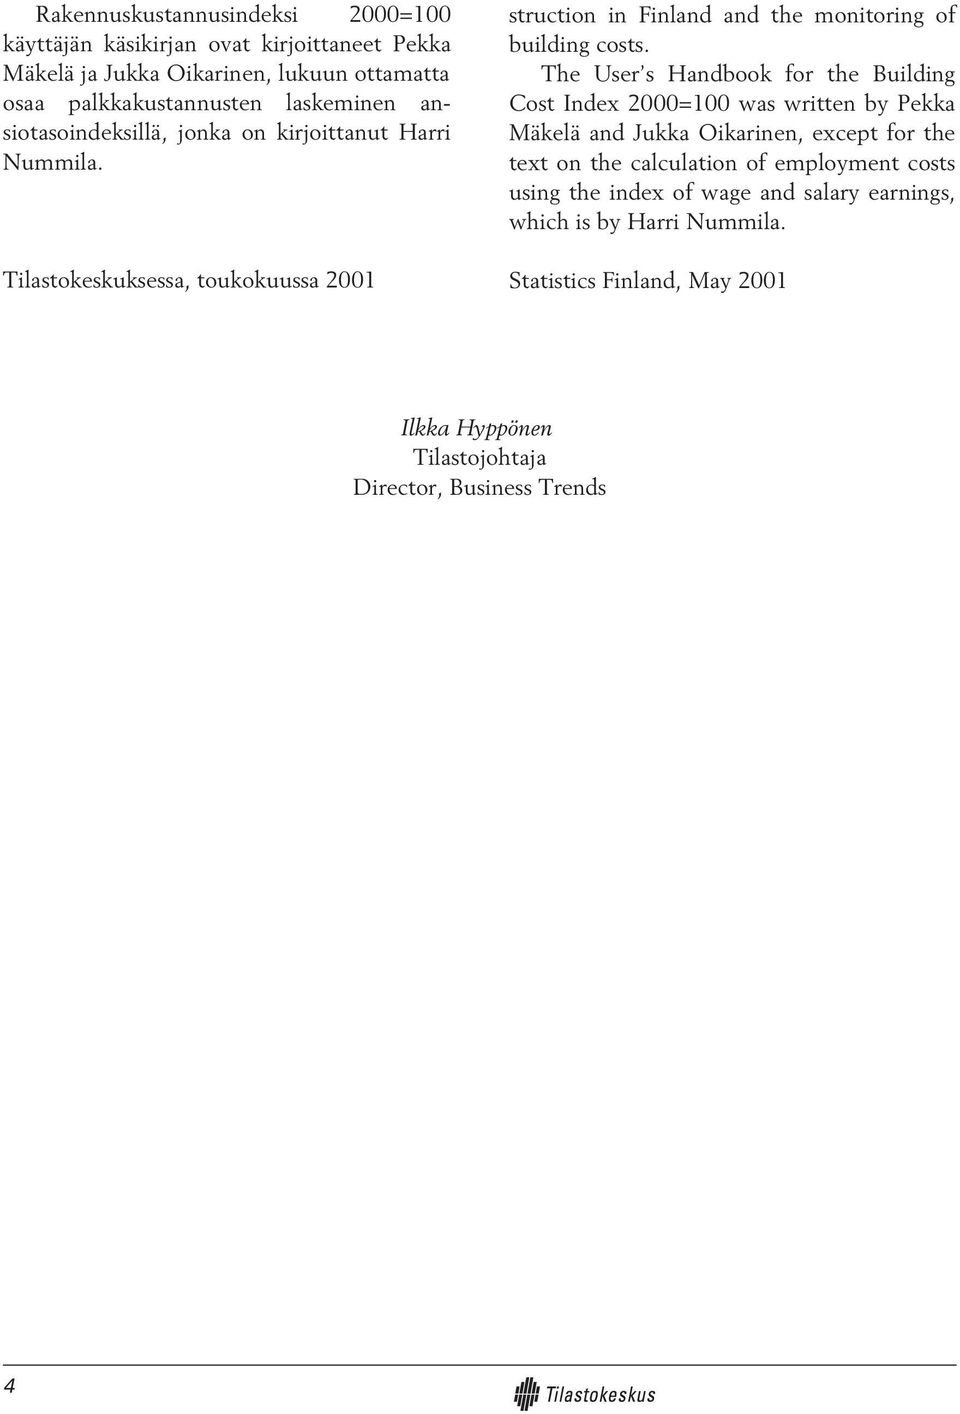 The User s Handbook for the Building Cost Index 2000=100 was written by Pekka Mäkelä and Jukka Oikarinen, except for the text on the calculation of employment